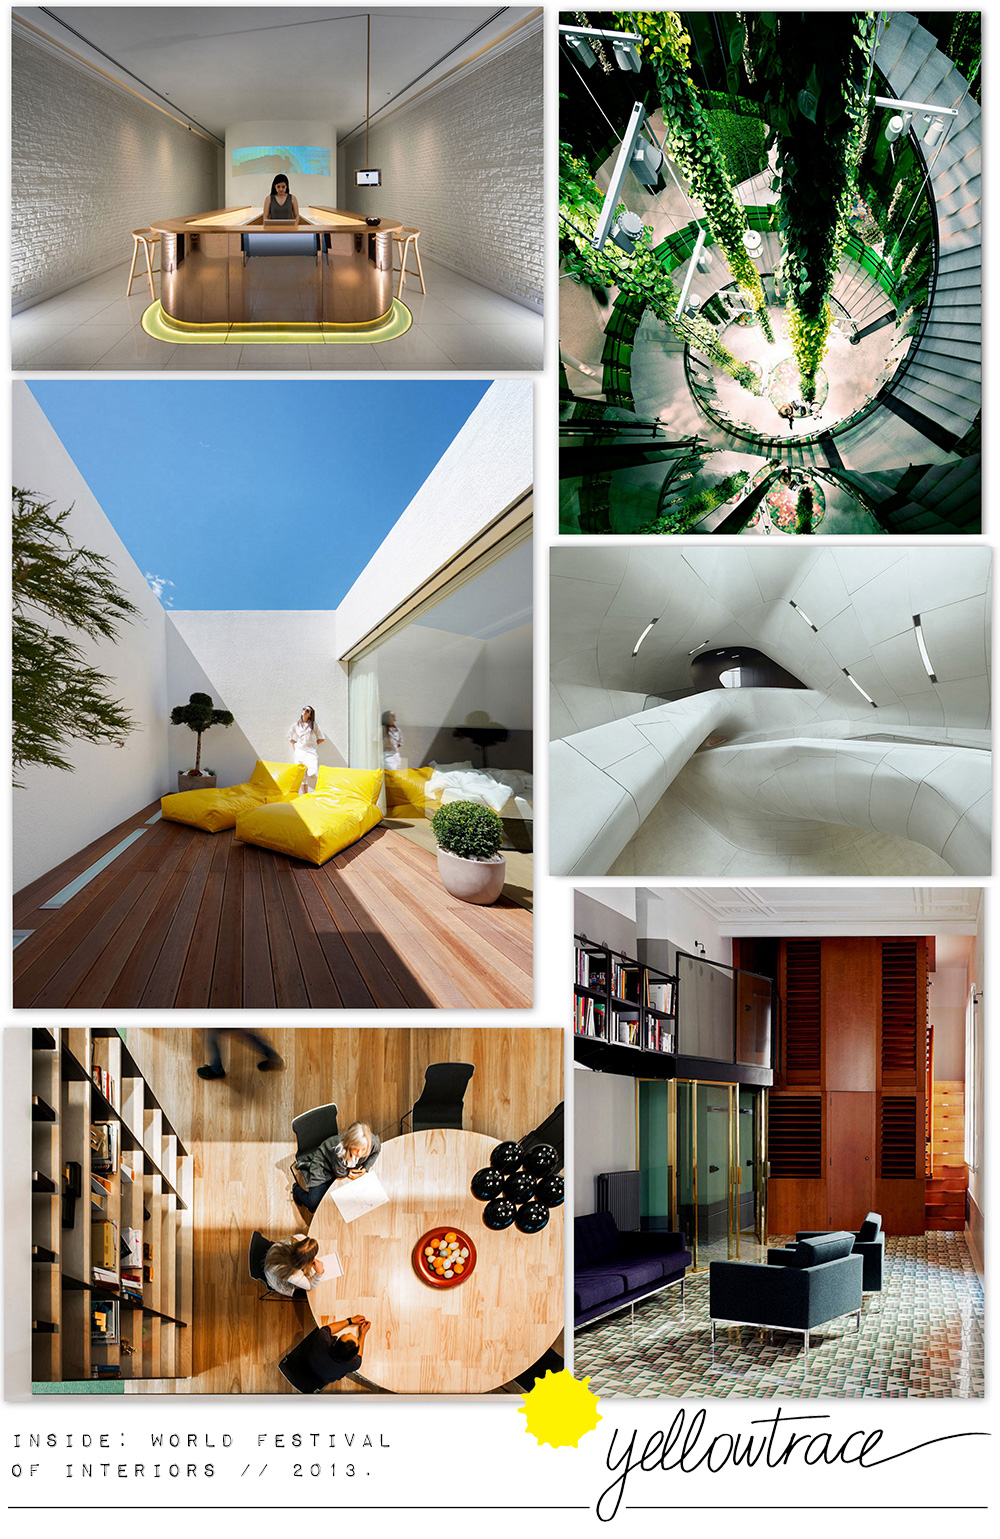 INSIDE World Festival of Interiors Shortlist 2013 | Yellowtrace.